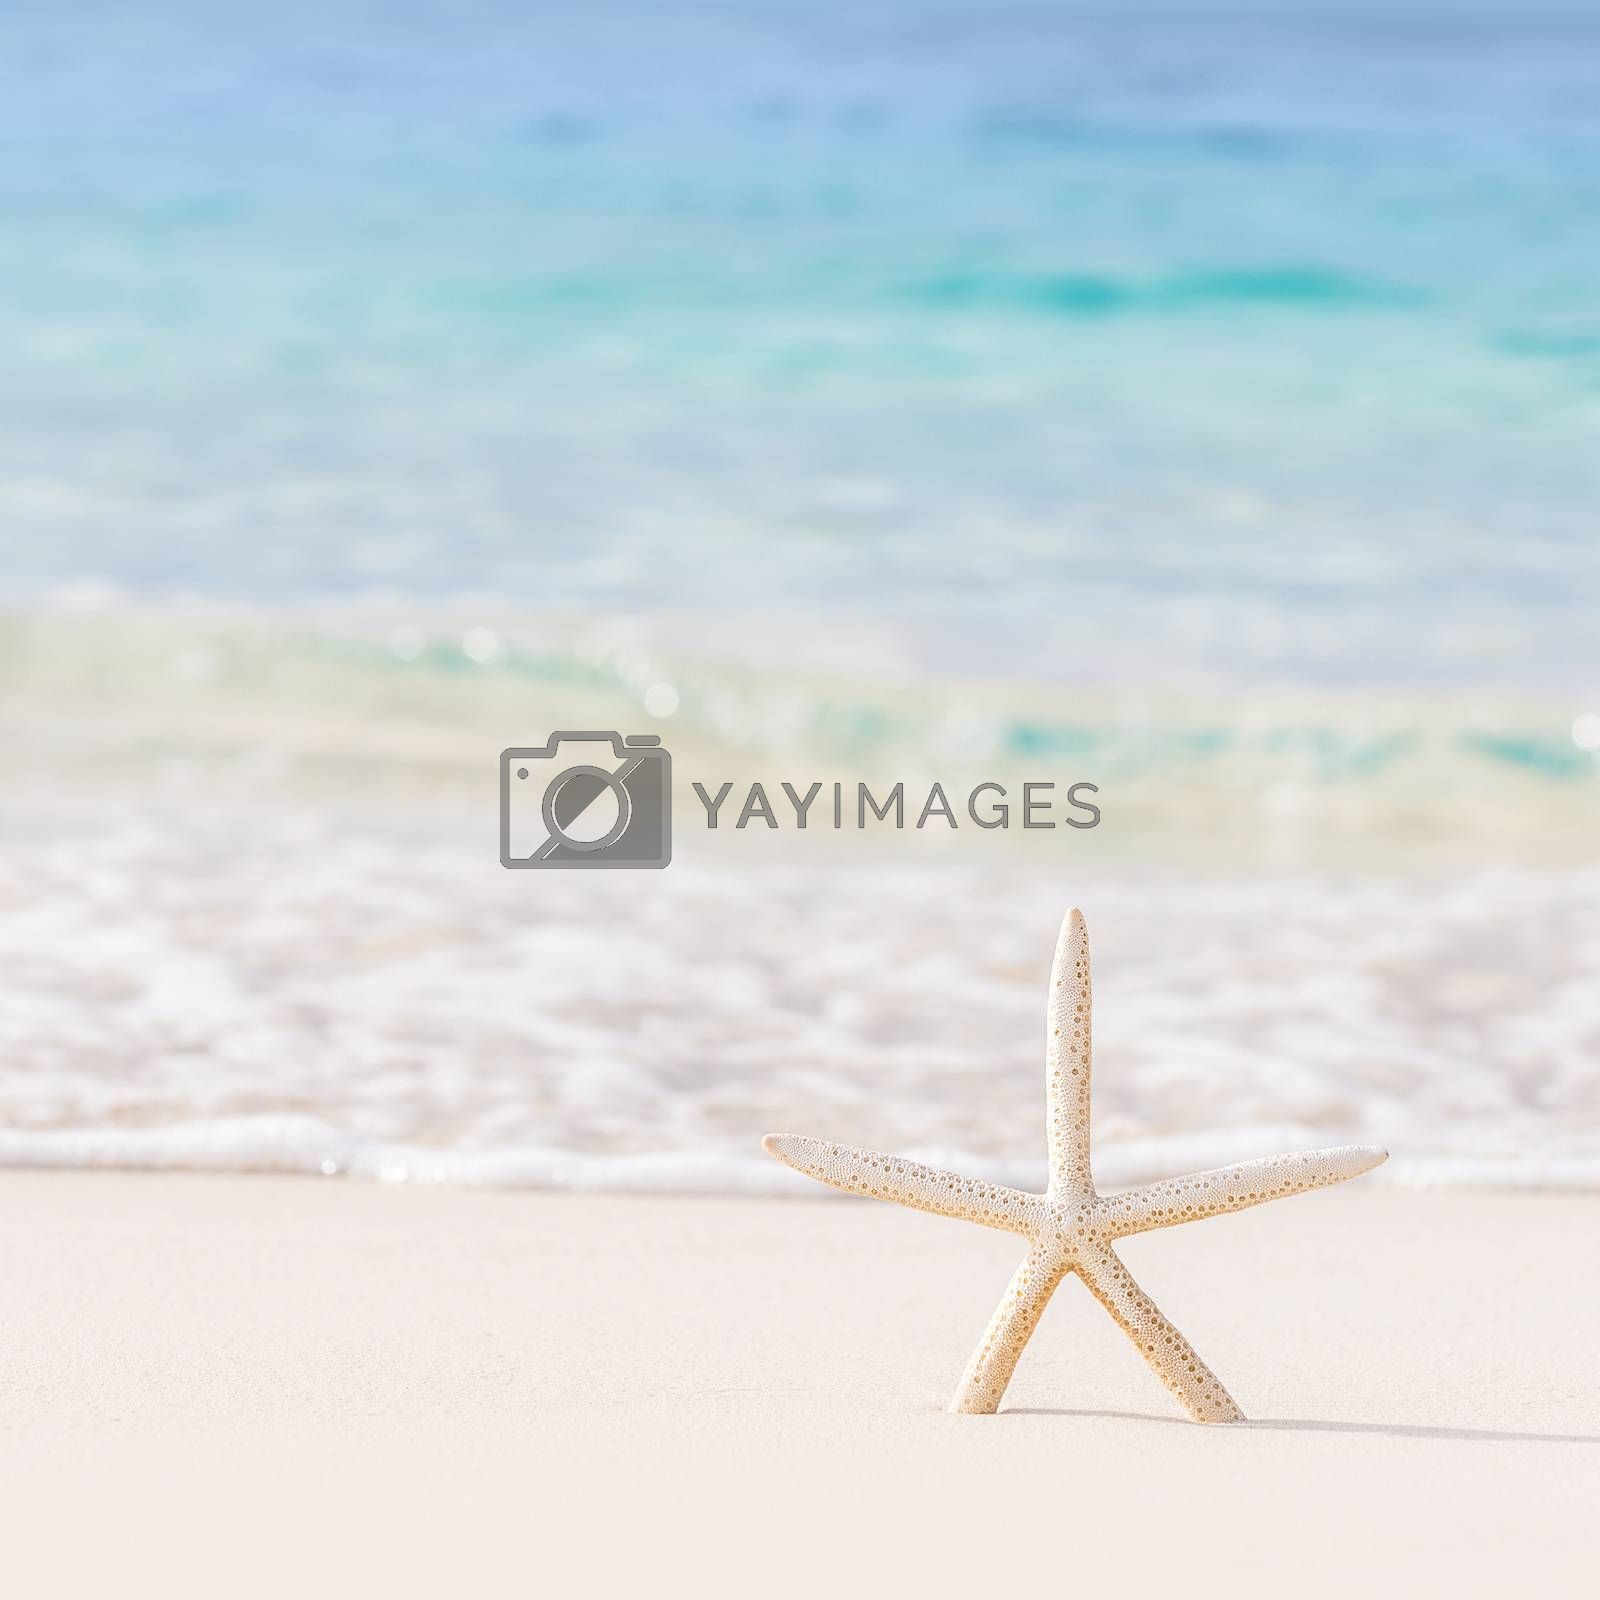 Royalty free image of Beautiful beach background by Anna_Omelchenko